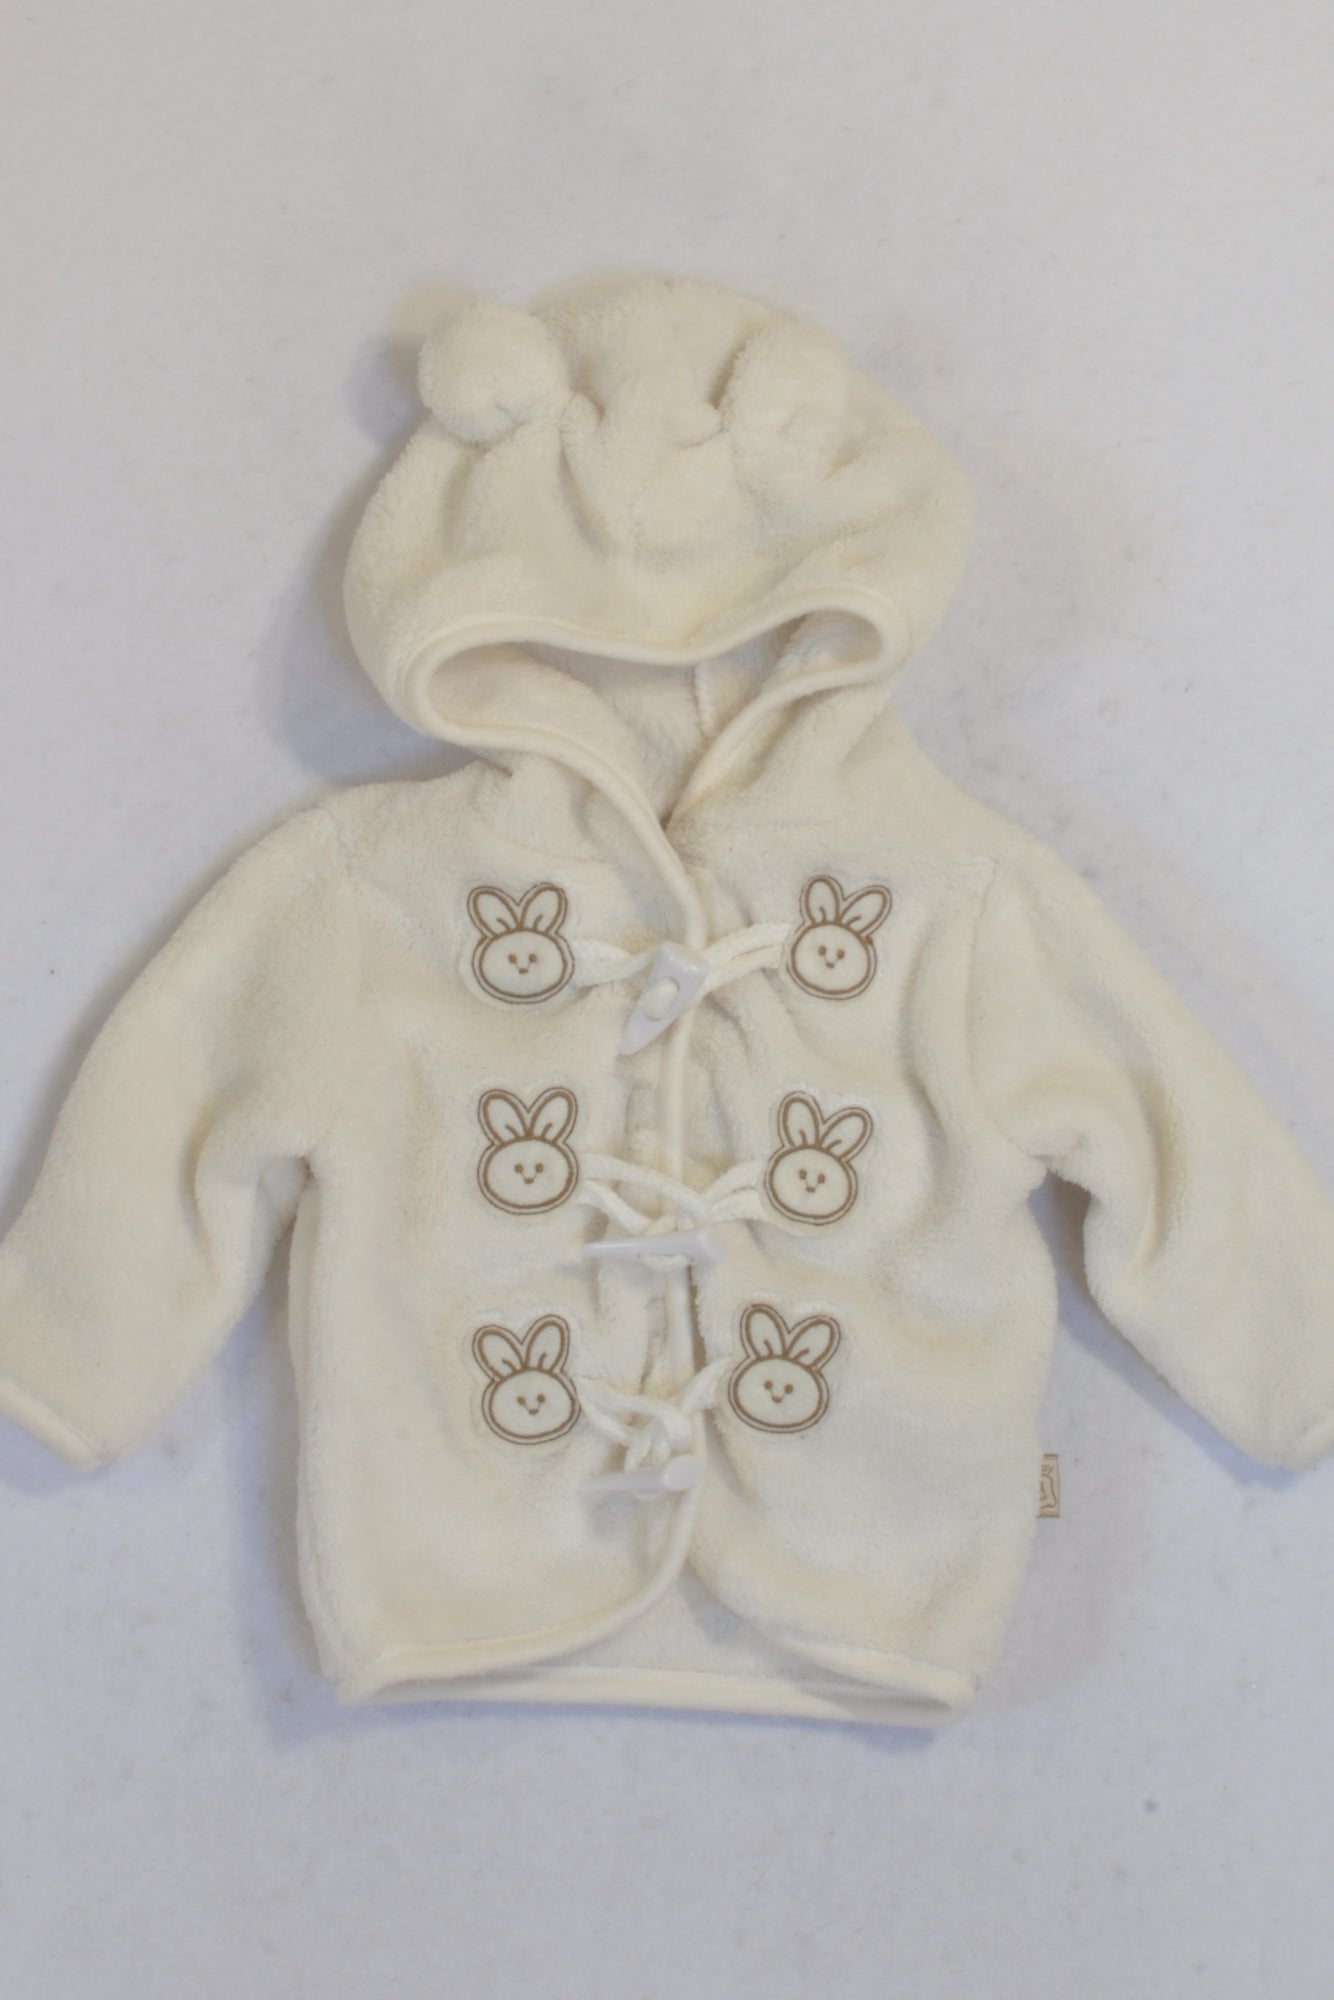 Ackermans Cream Fleece Bunny Toggle Hoodie Unisex 0-3 months